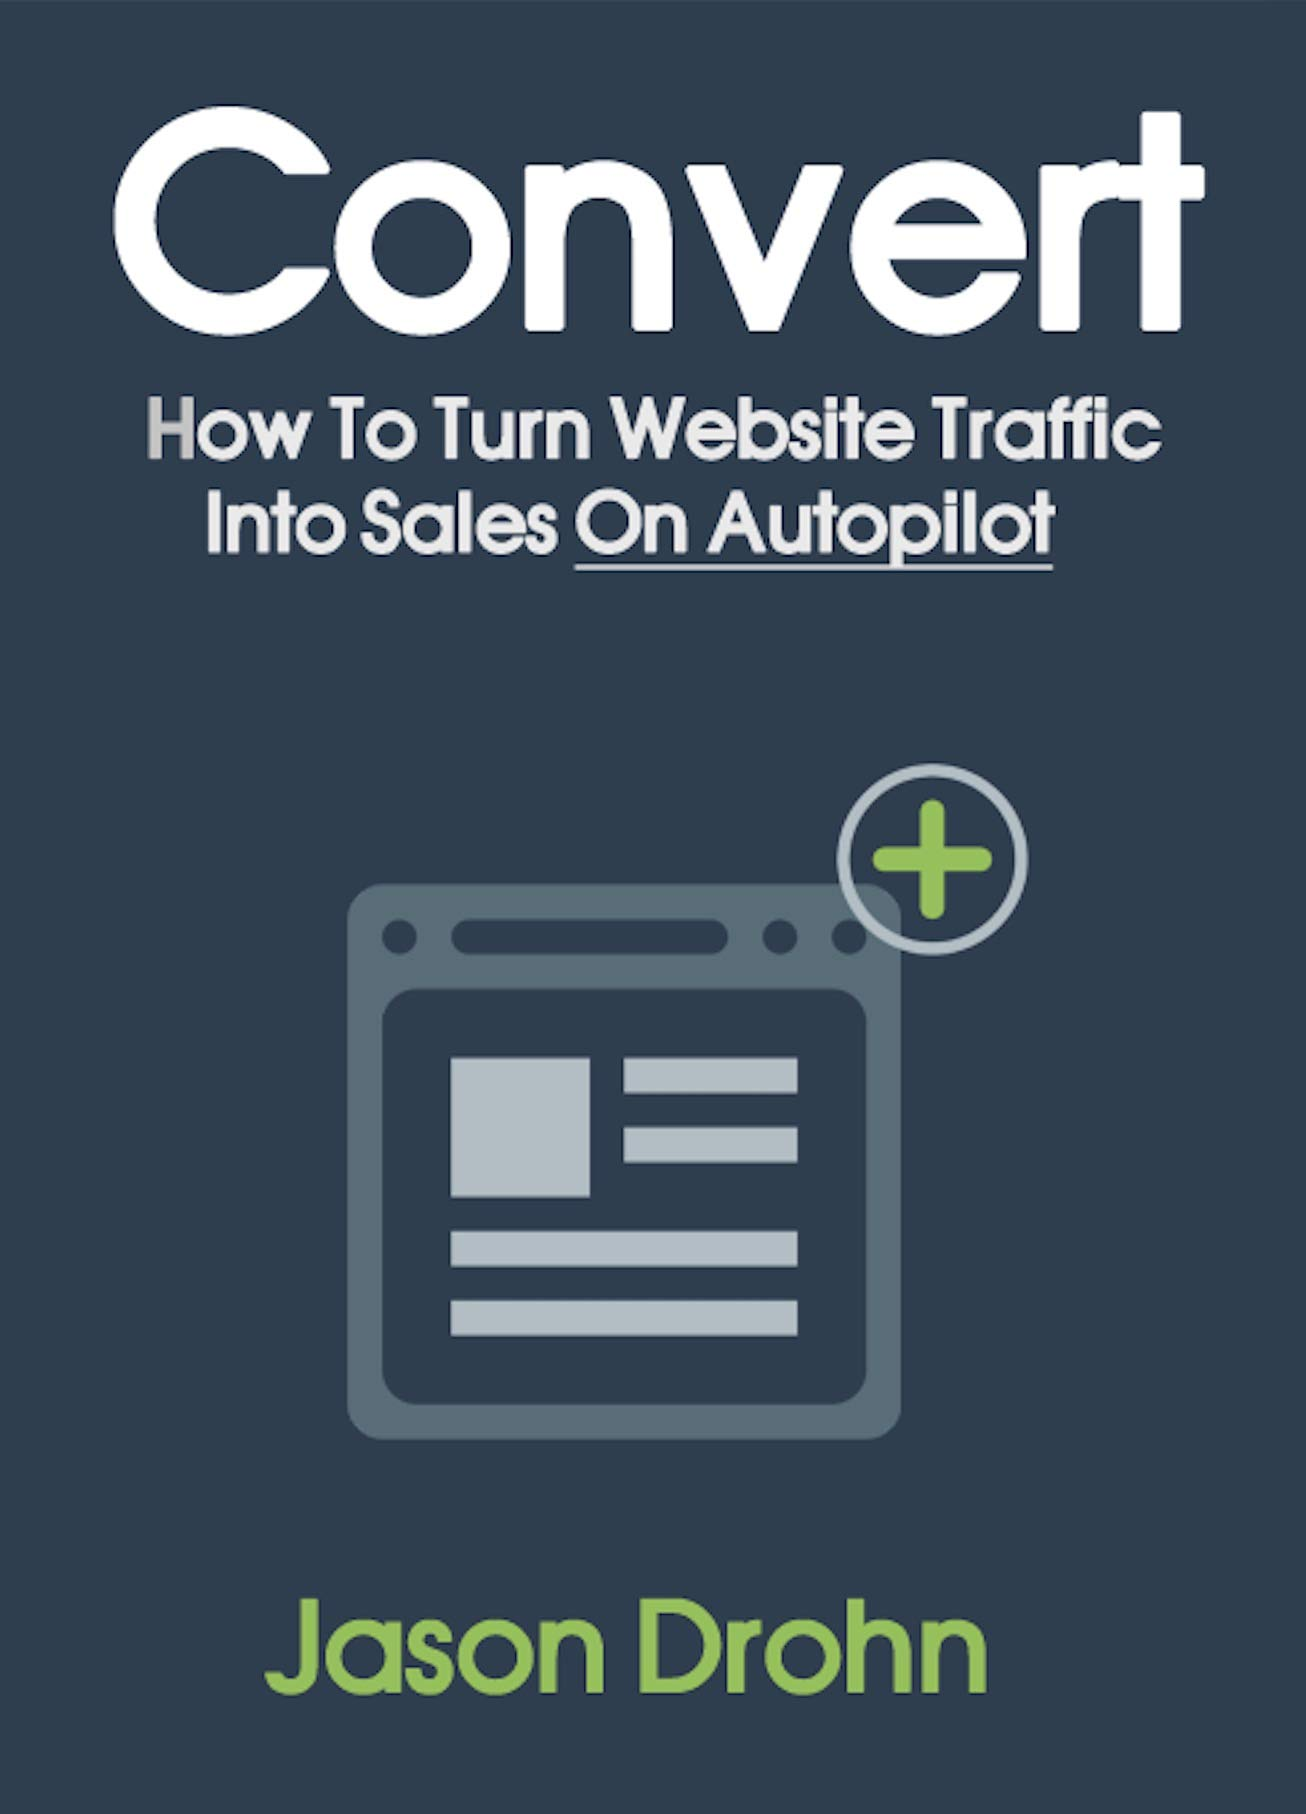 Convert: How To Turn Website Traffic Into Sales